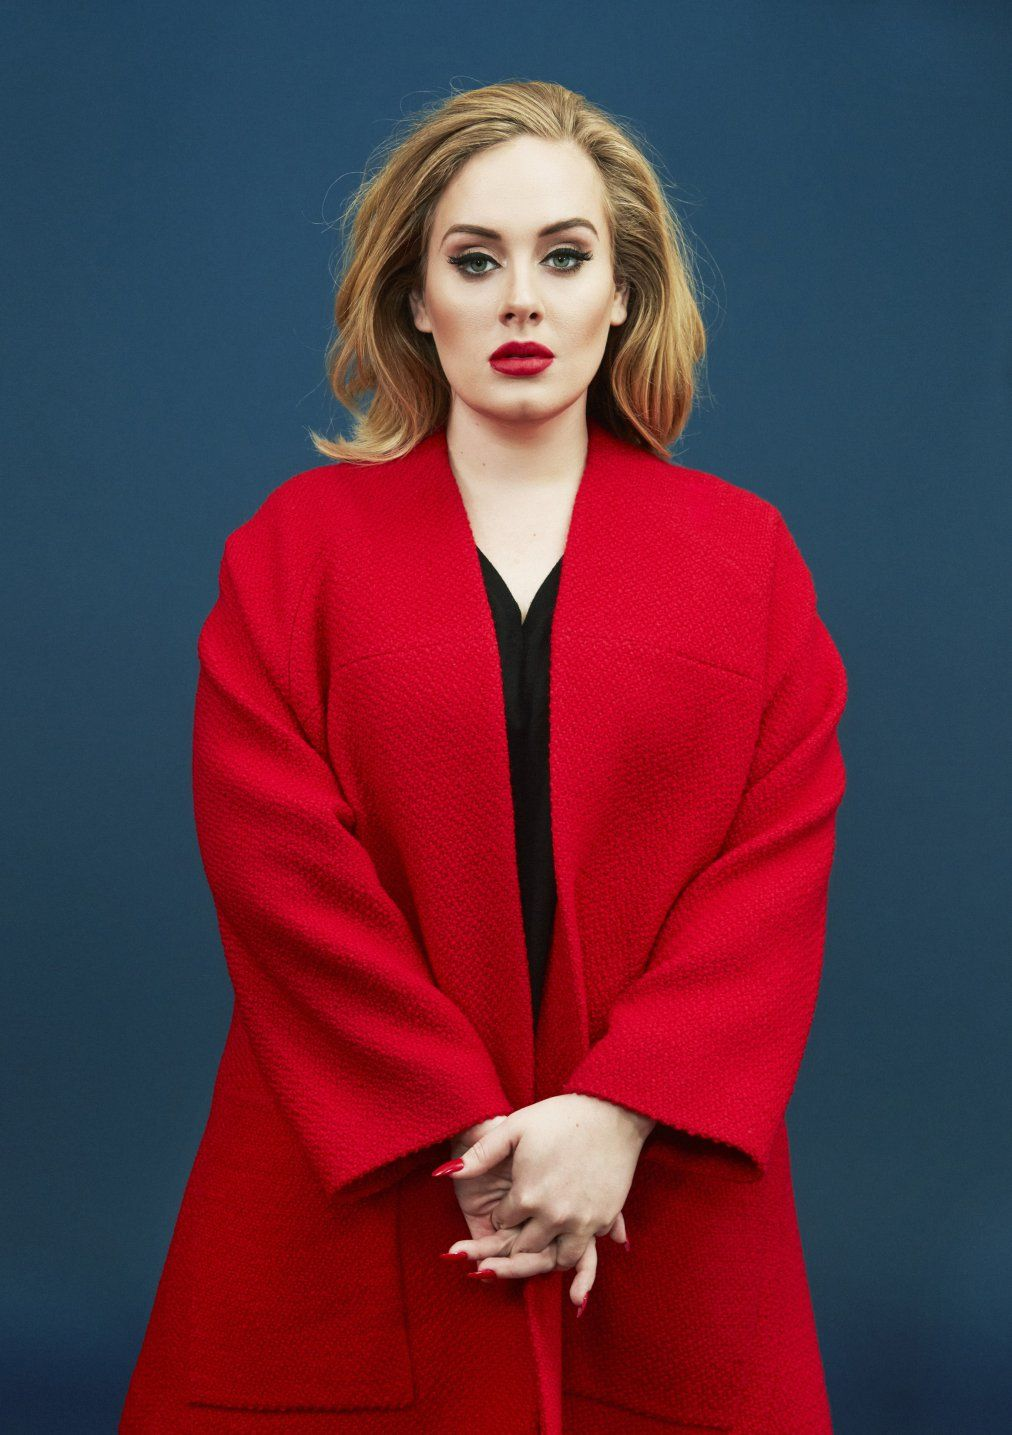 International treasure : Adele